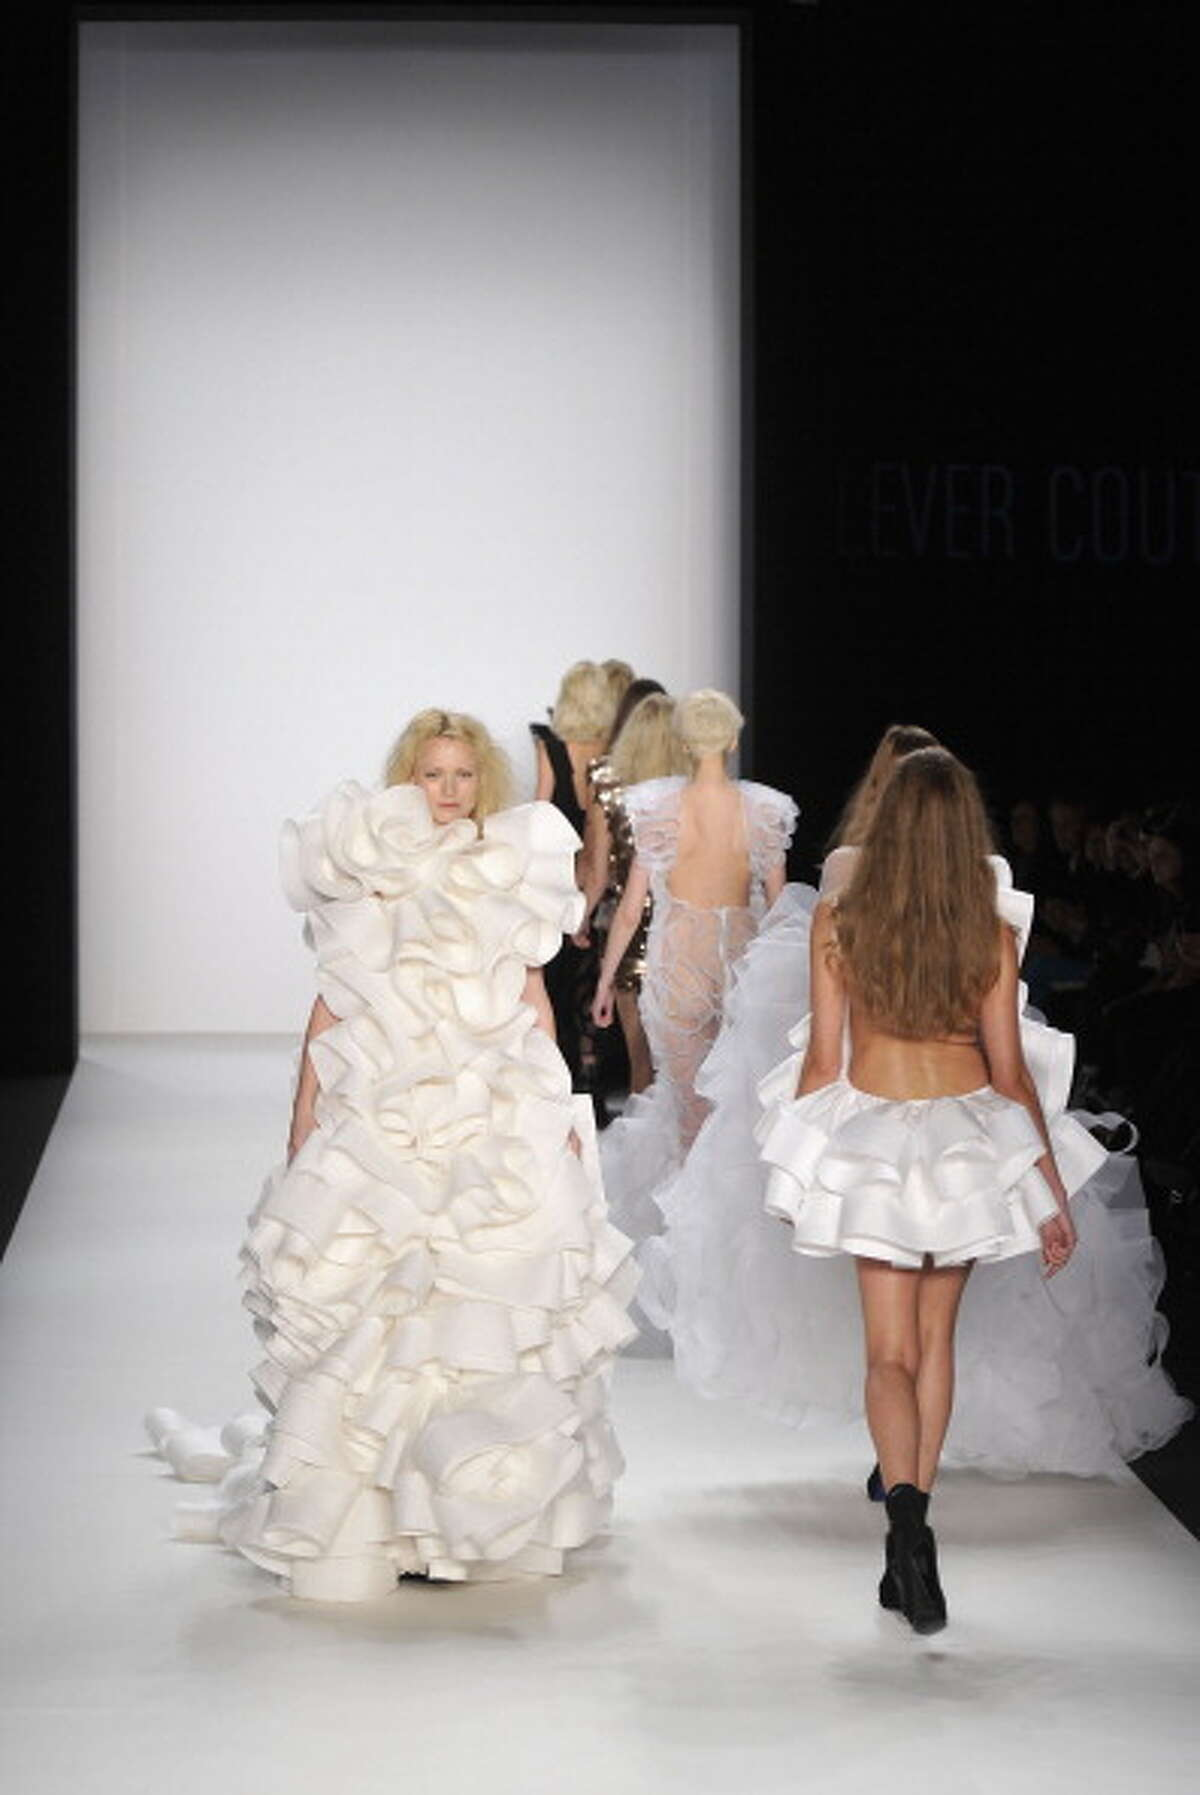 BERLIN, GERMANY - JANUARY 19: Models walk the runway at the Le Ver Couture Show during the Mercedes Benz Fashion Week Autumn/Winter 2011 at Bebelplatz on January 19, 2011 in Berlin, Germany. (Photo by Gareth Cattermole/Getty Images)